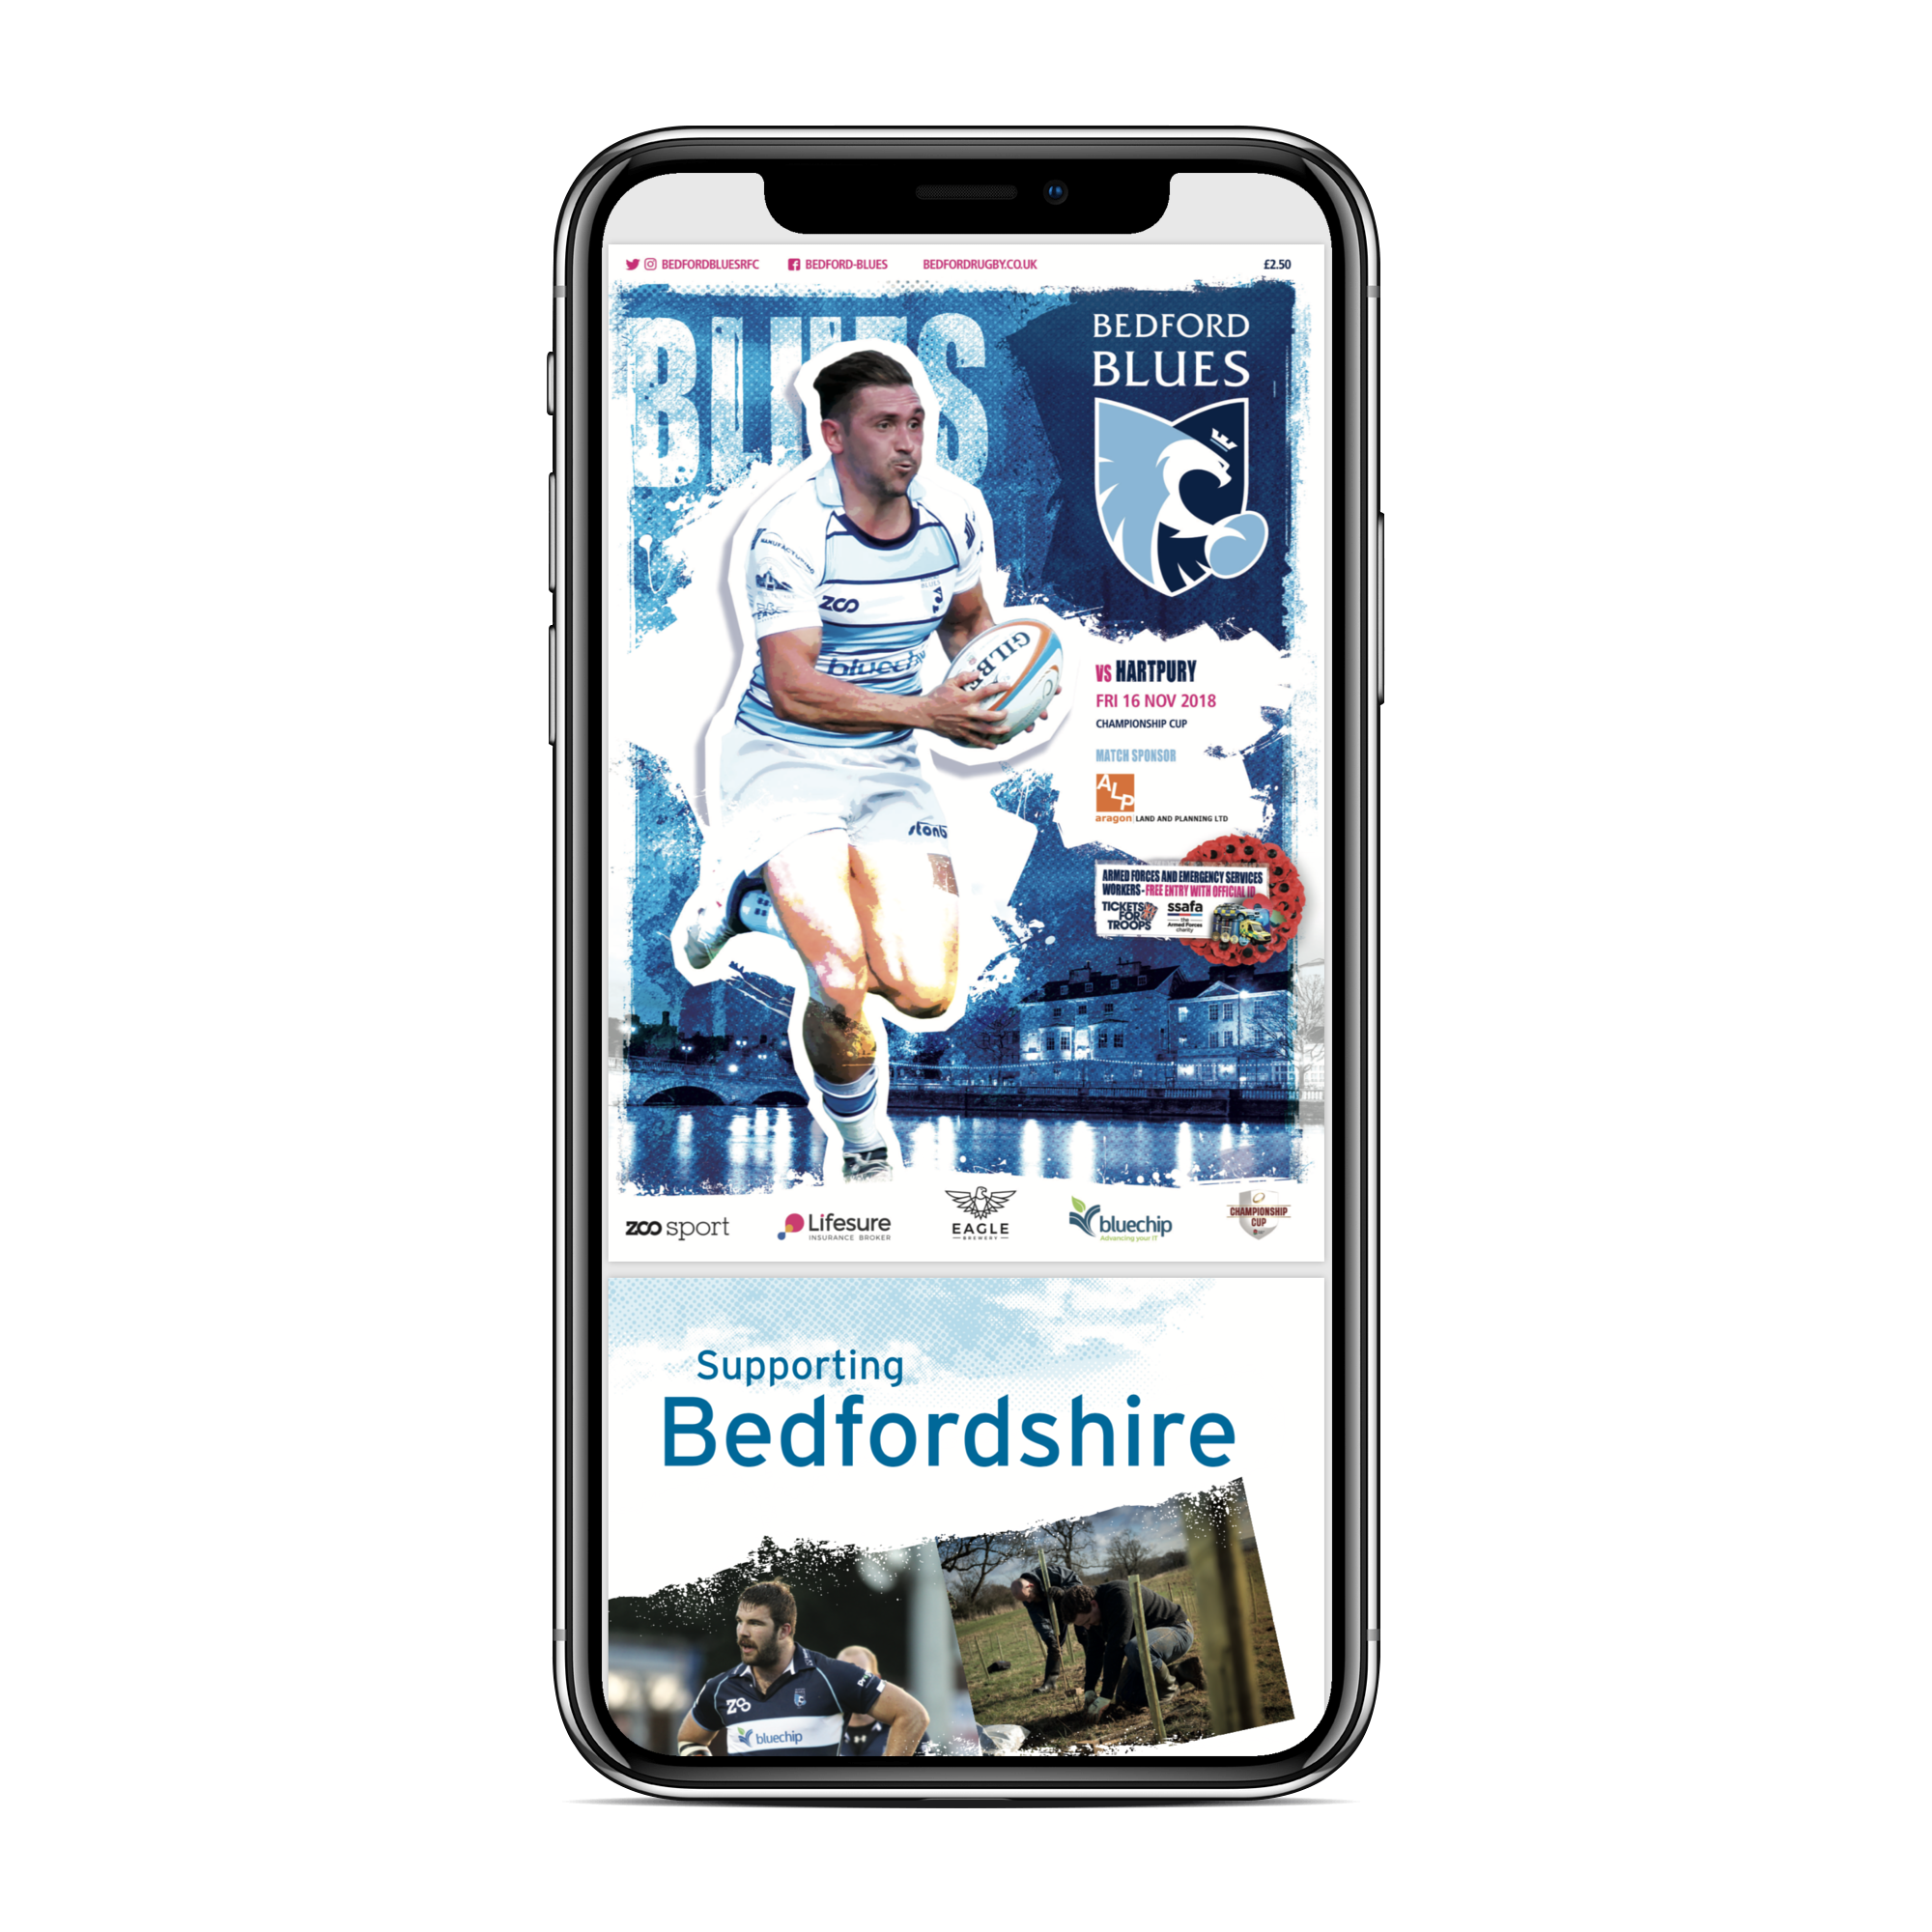 … Across all sports - The platform allows sport fans to connect and follow their favourite sporting teams and icons all in one place. MatchDayInfo has the ability to unite all sports across the country, encouraging fans to follow more than one sport – through the promotional platform.